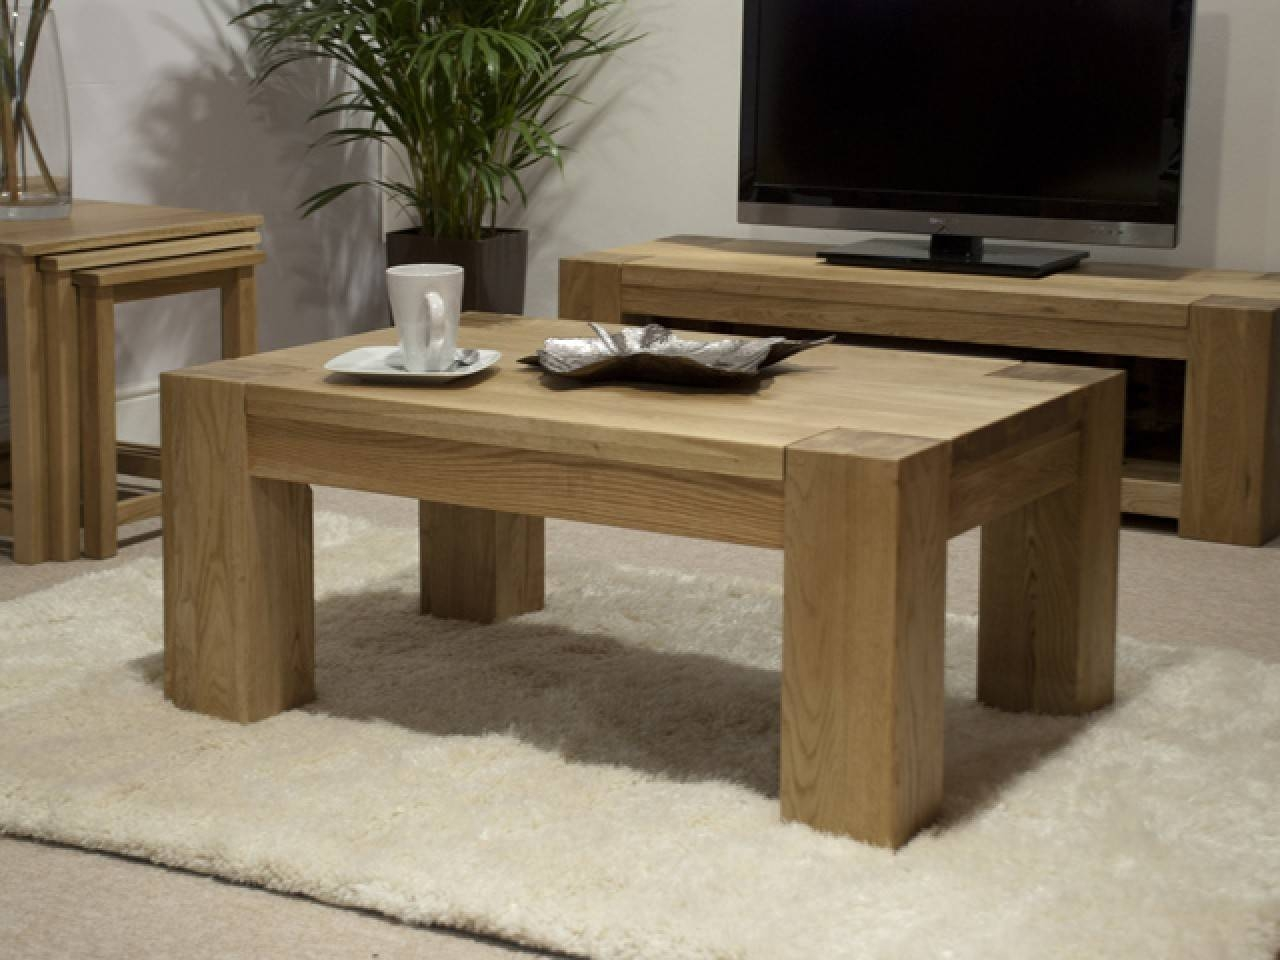 Oak Coffee Tables Trend Small Table / Thippo with regard to Oak Coffee Table Sets (Image 19 of 30)